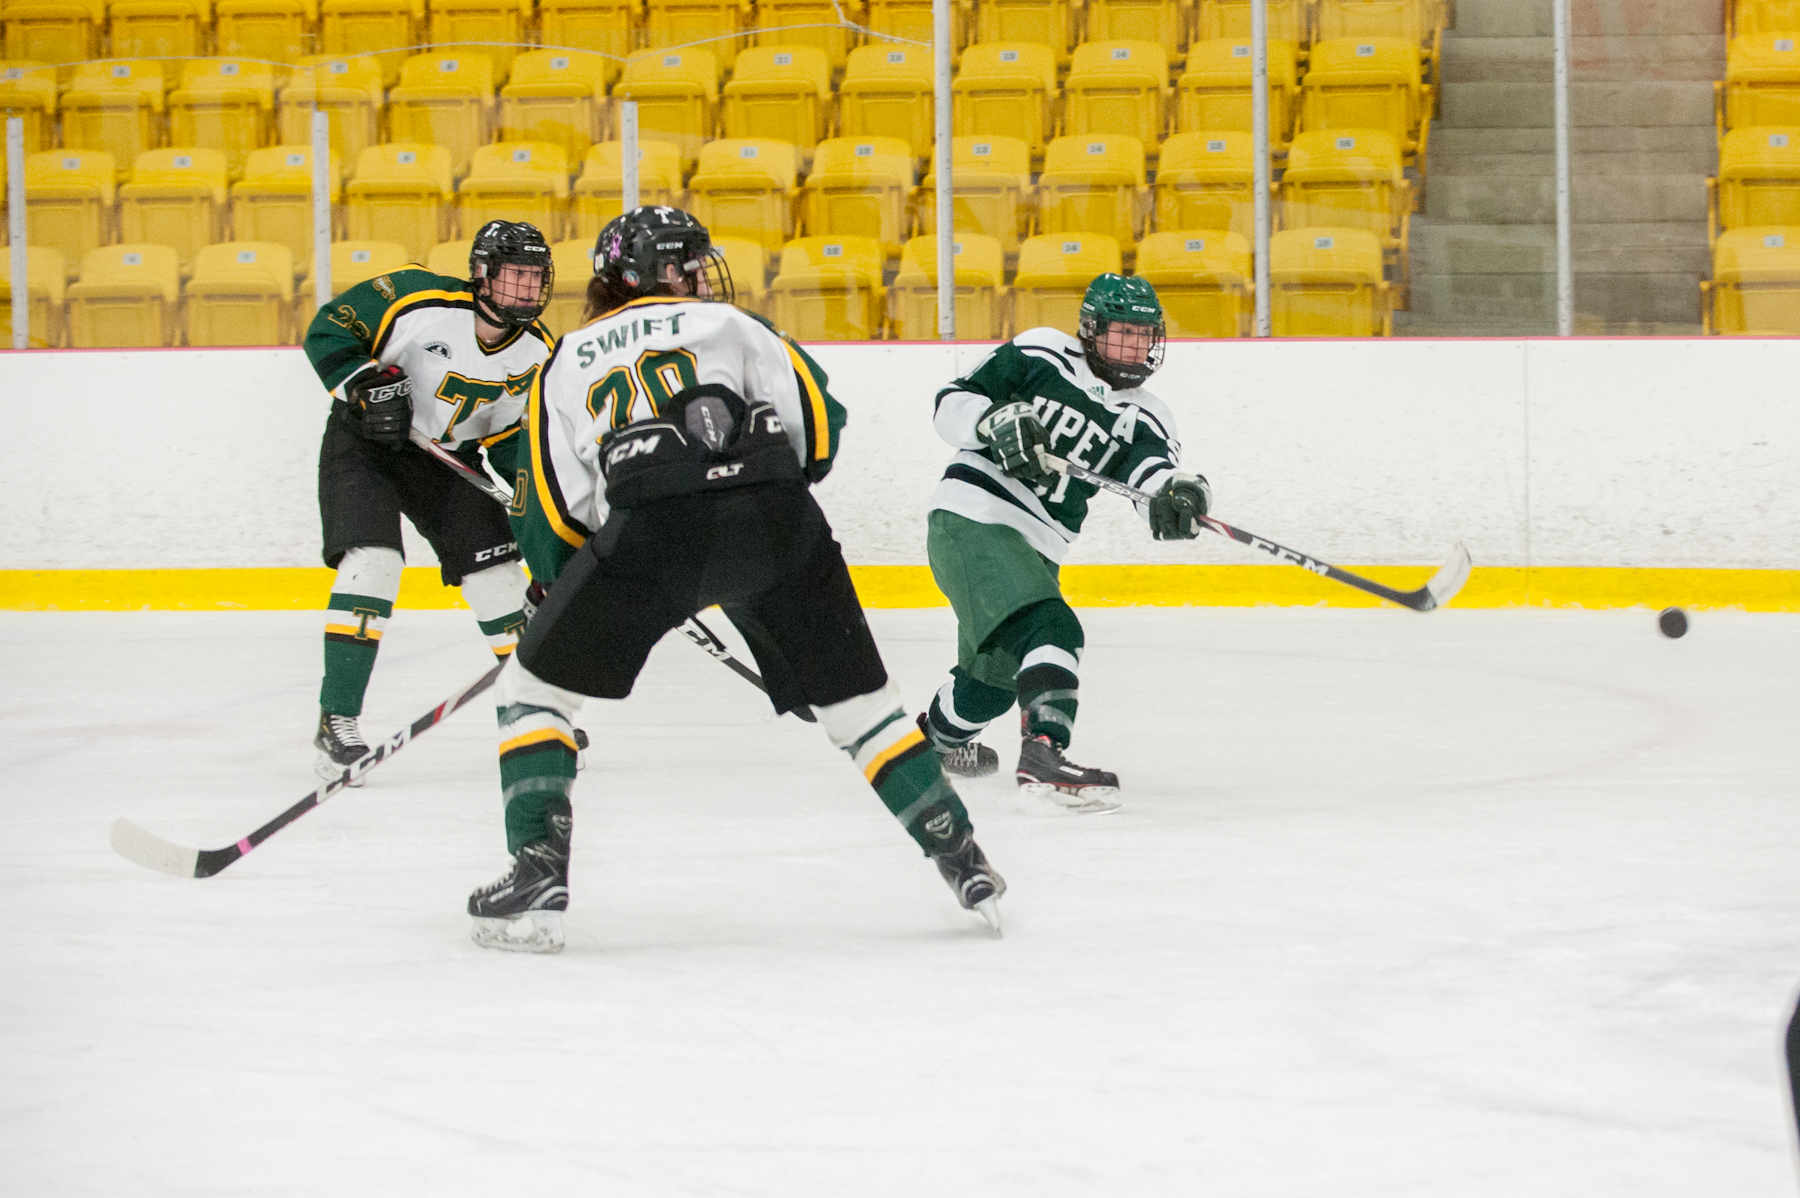 Panthers topple Tommies 3-1 capture team-best 20th win